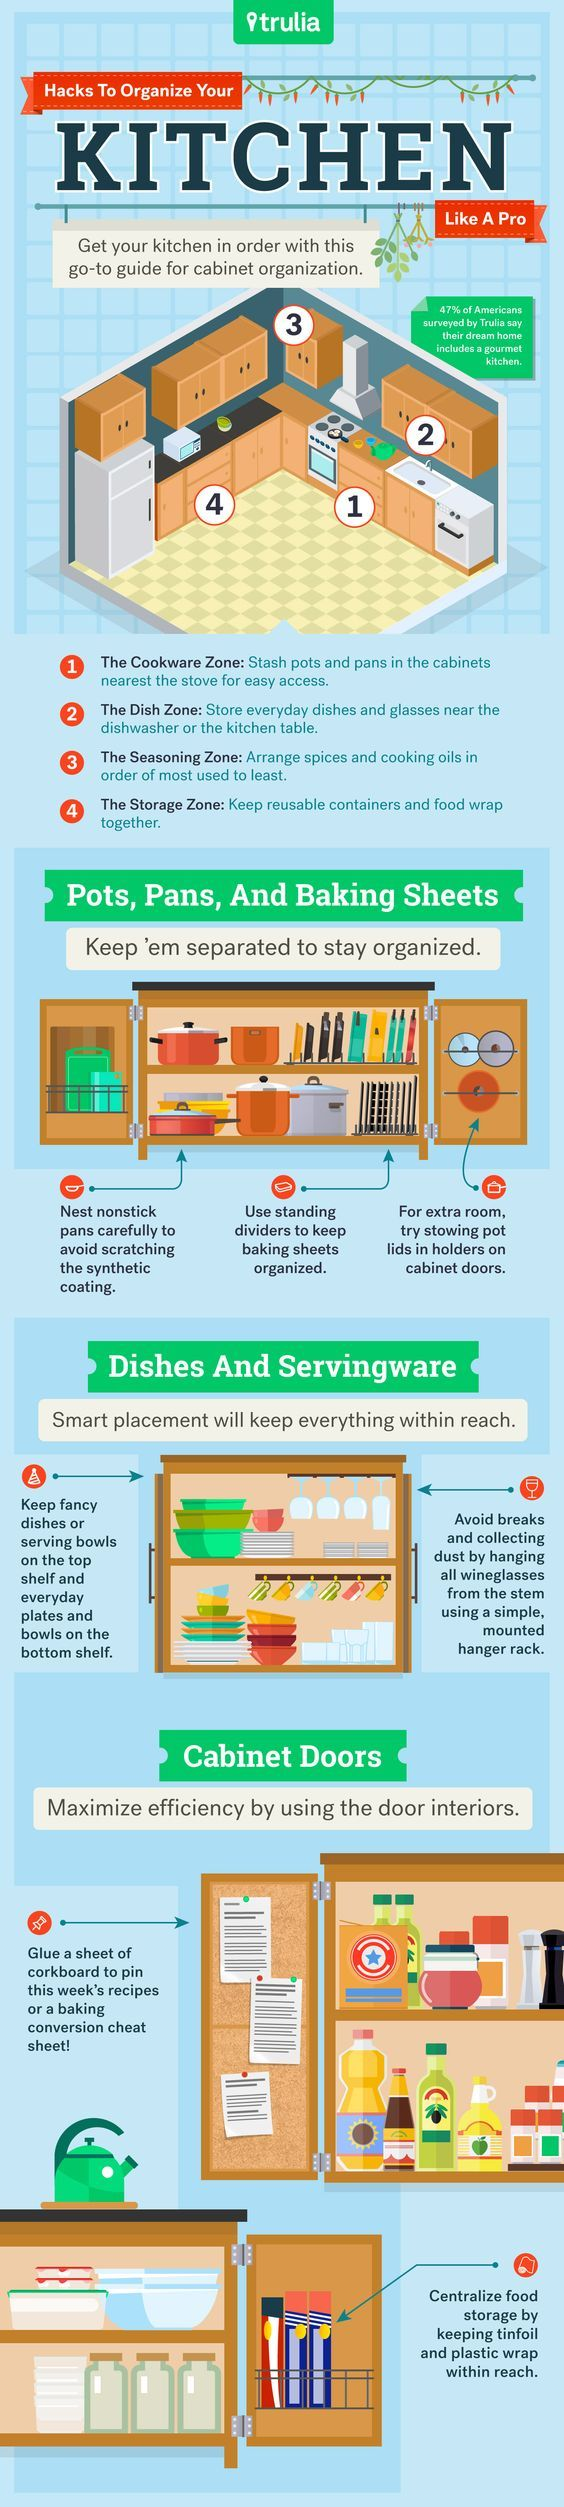 8 beyond easy kitchen organization hacks kitchen for Kitchen organization hacks